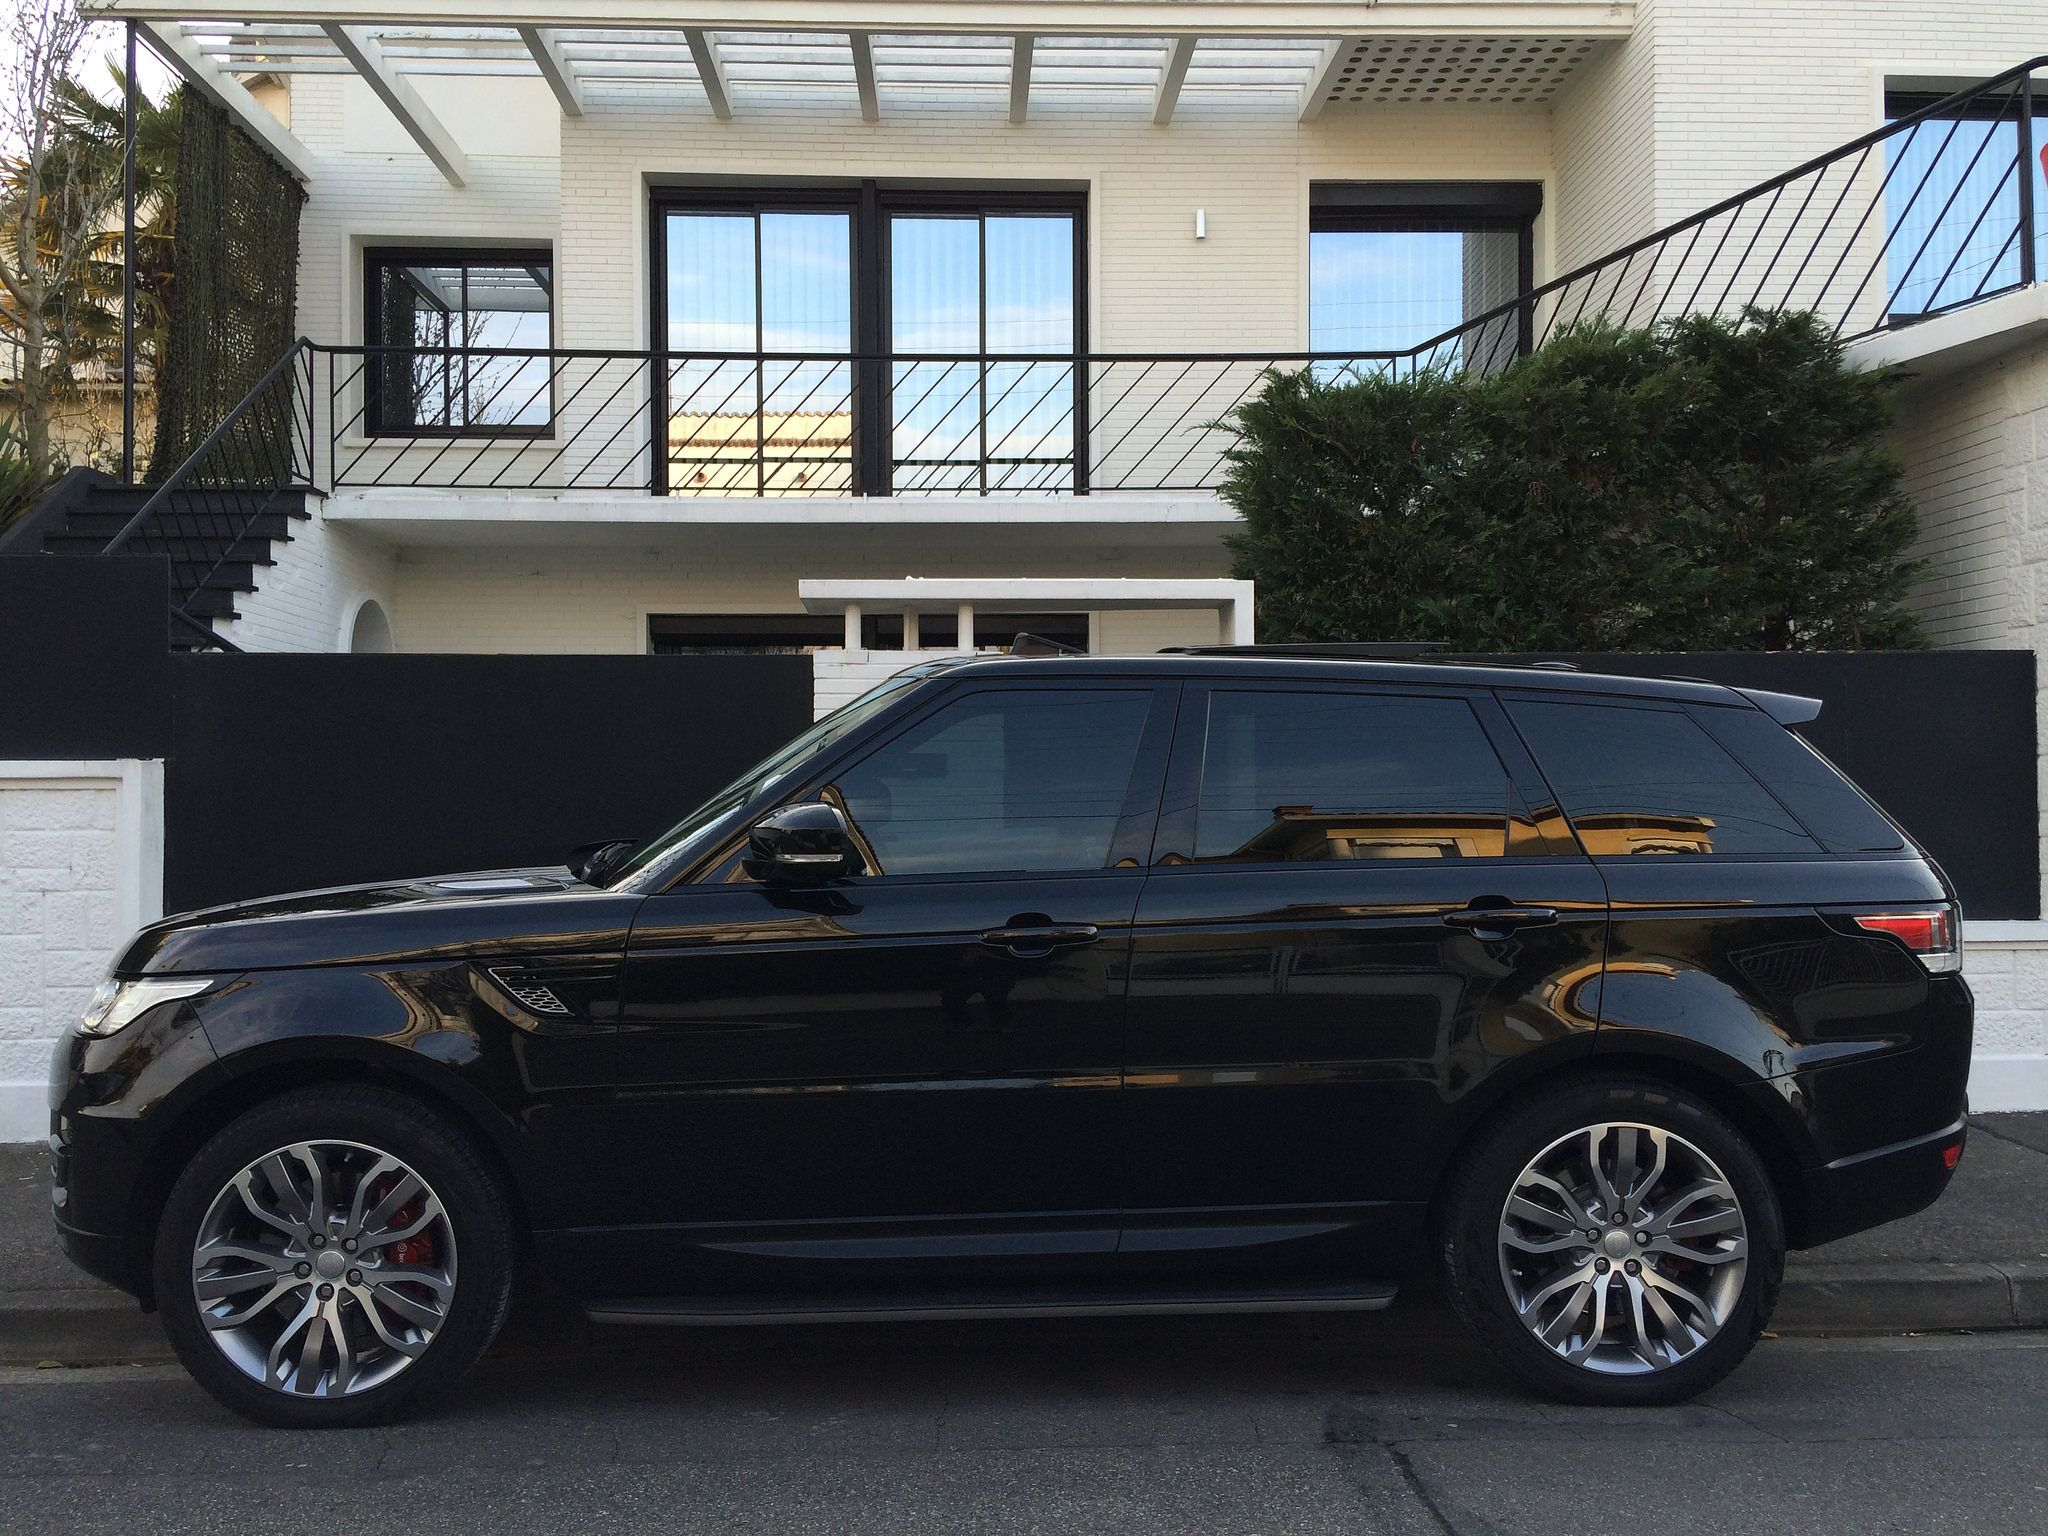 image range rover sport range rovers and driveways. Black Bedroom Furniture Sets. Home Design Ideas